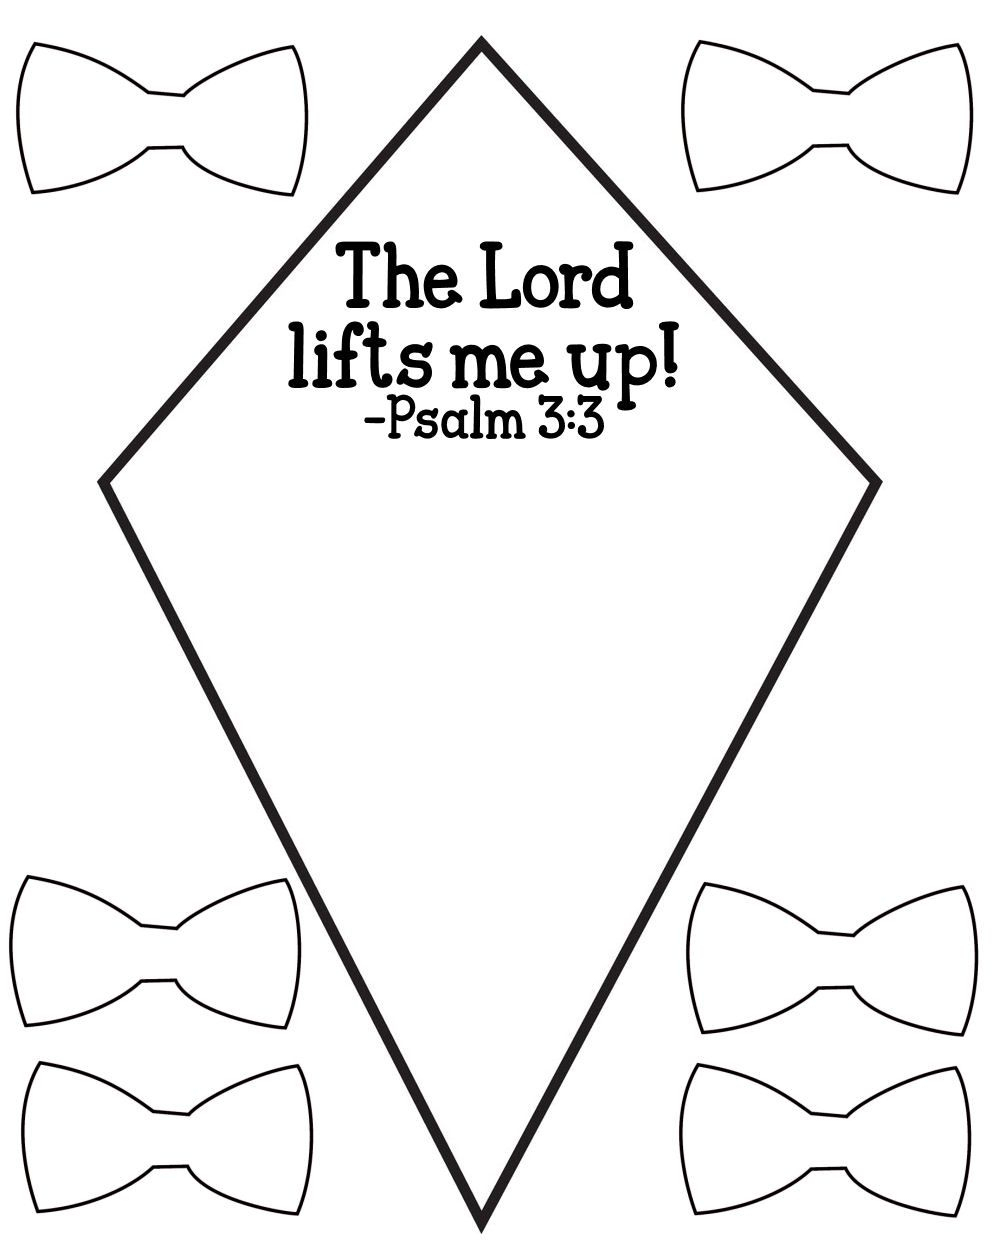 Free Psalm 3:3 Kids Bible Lesson Activity Printables - Free Printable Children's Church Curriculum